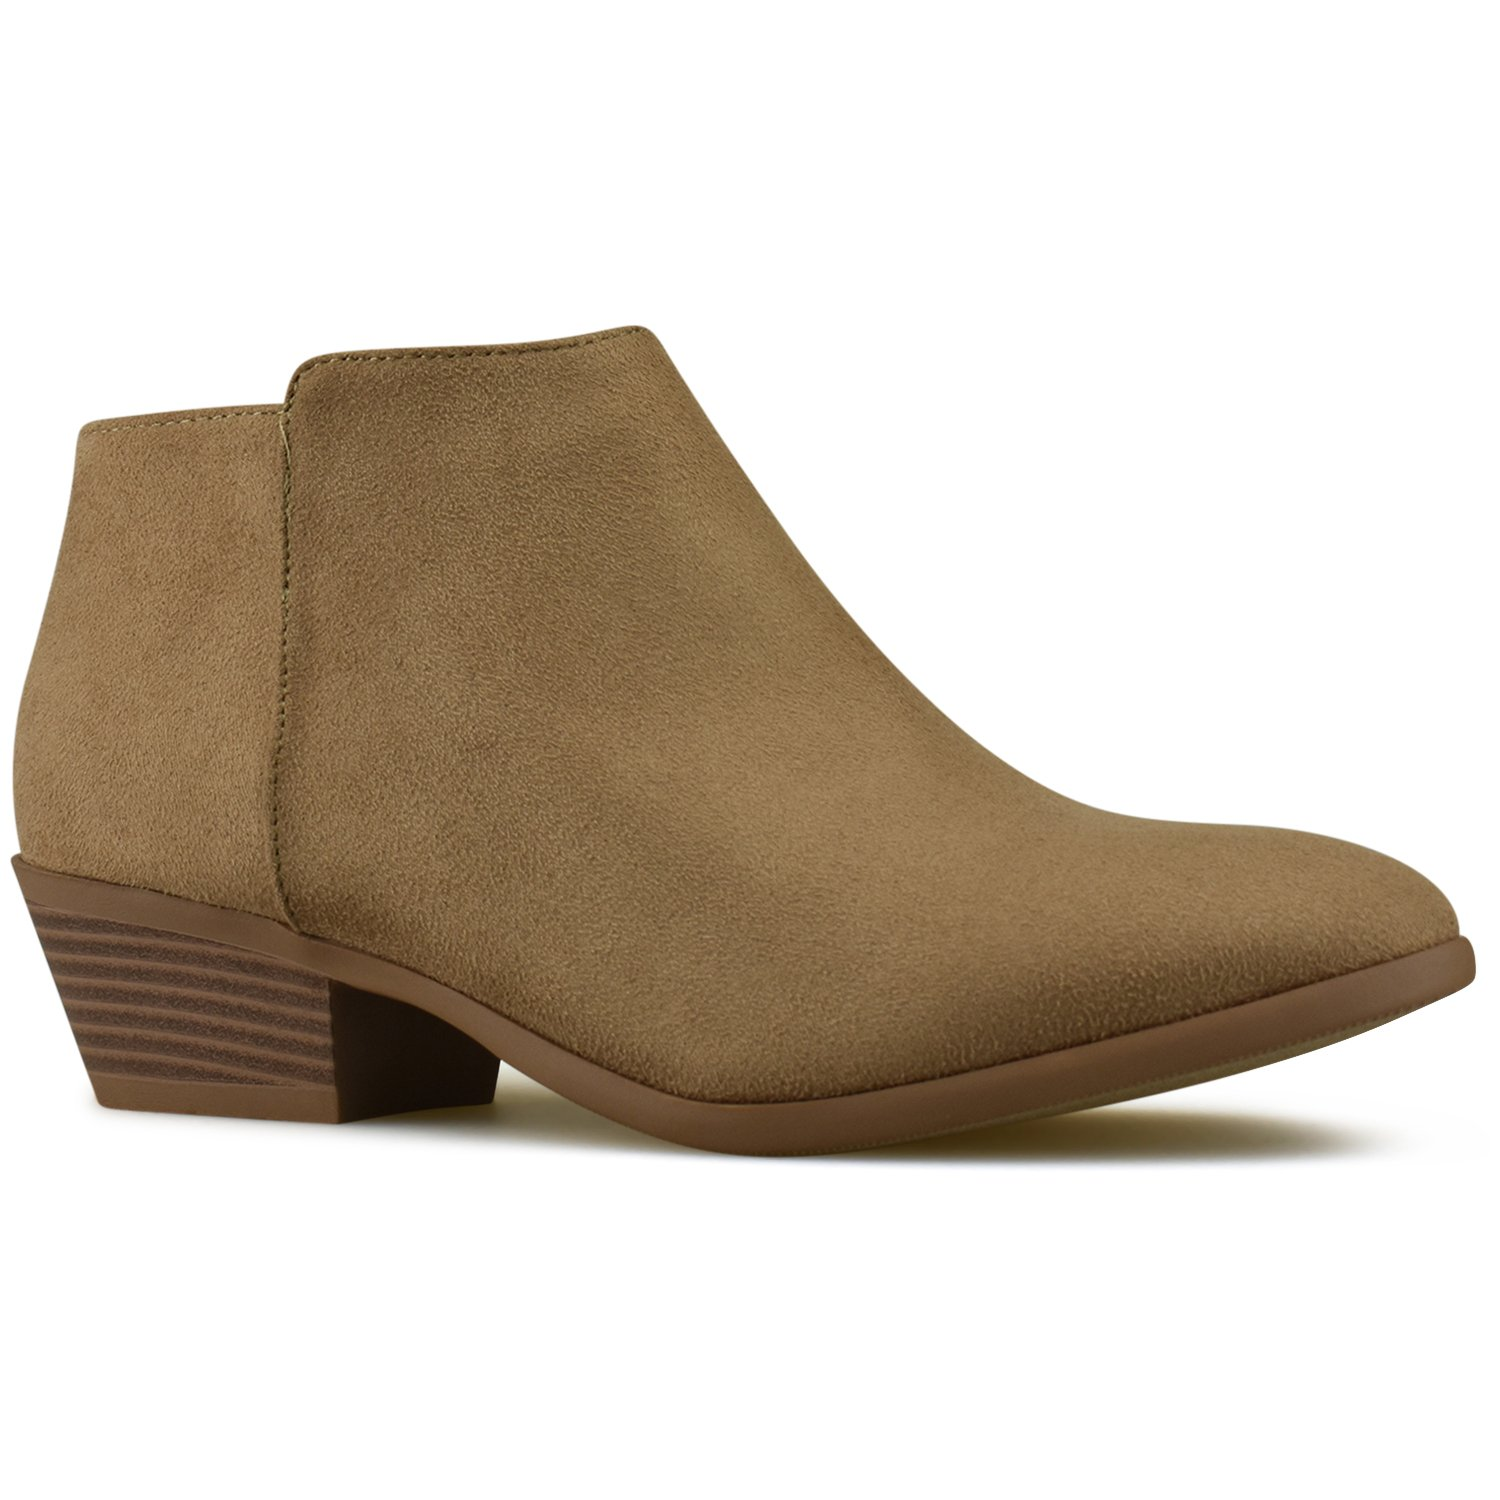 check out 183b0 55021 Premier Standard Women s Round Toe Toe Toe Faux Suede Stacked Heel Western  Ankle Bootie B07DP93NXP Boots